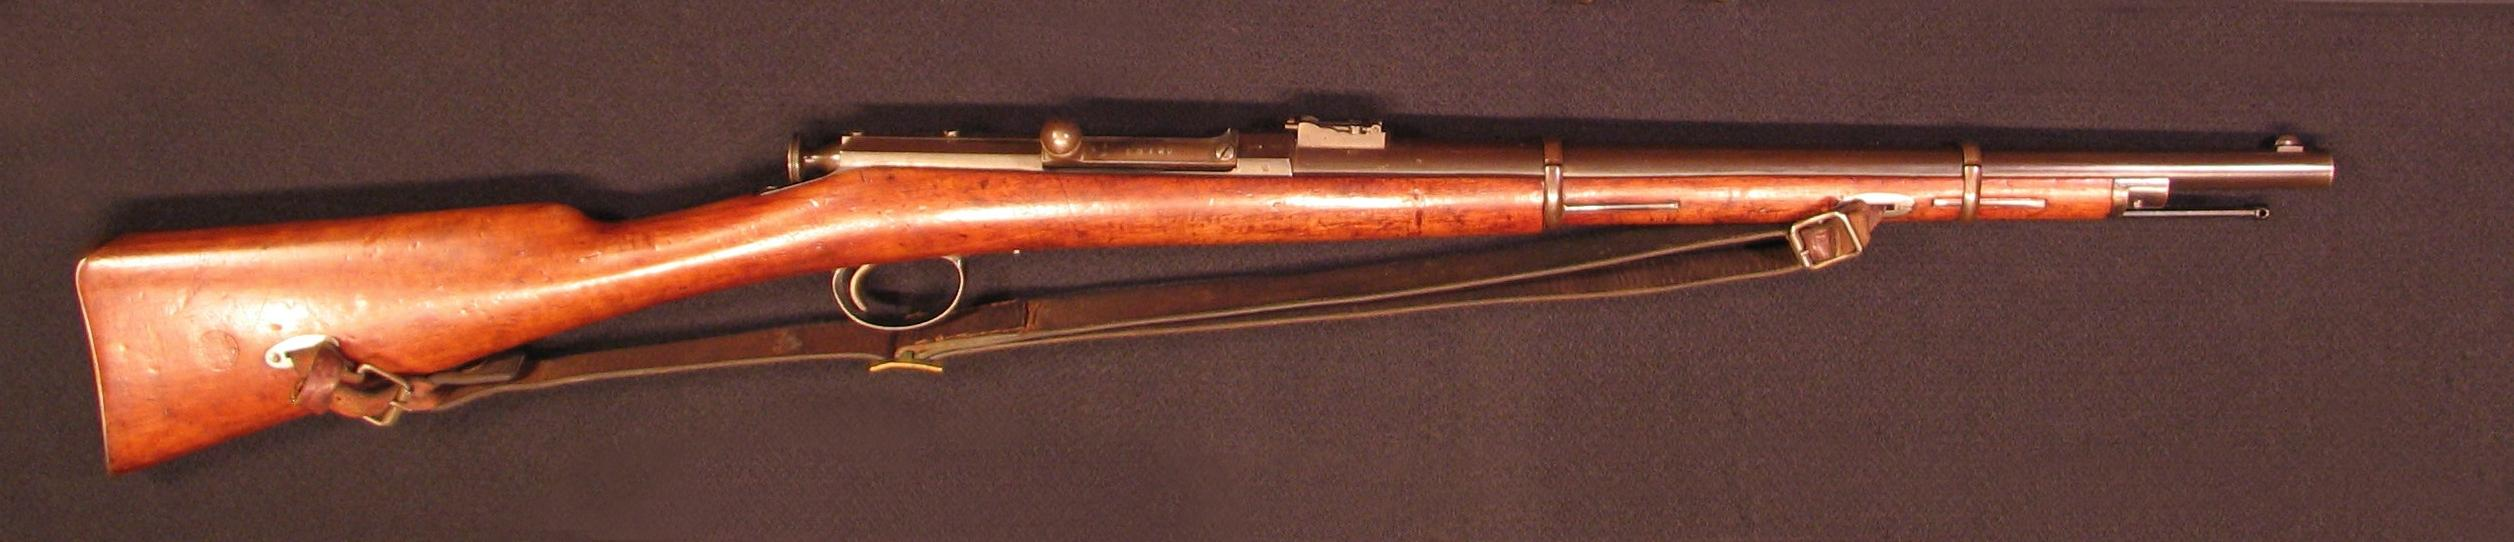 Click image for larger version.  Name:Russian M1870 Berdan II Cavalry Carbine 01R.JPG Views:7 Size:154.3 KB ID:2309562